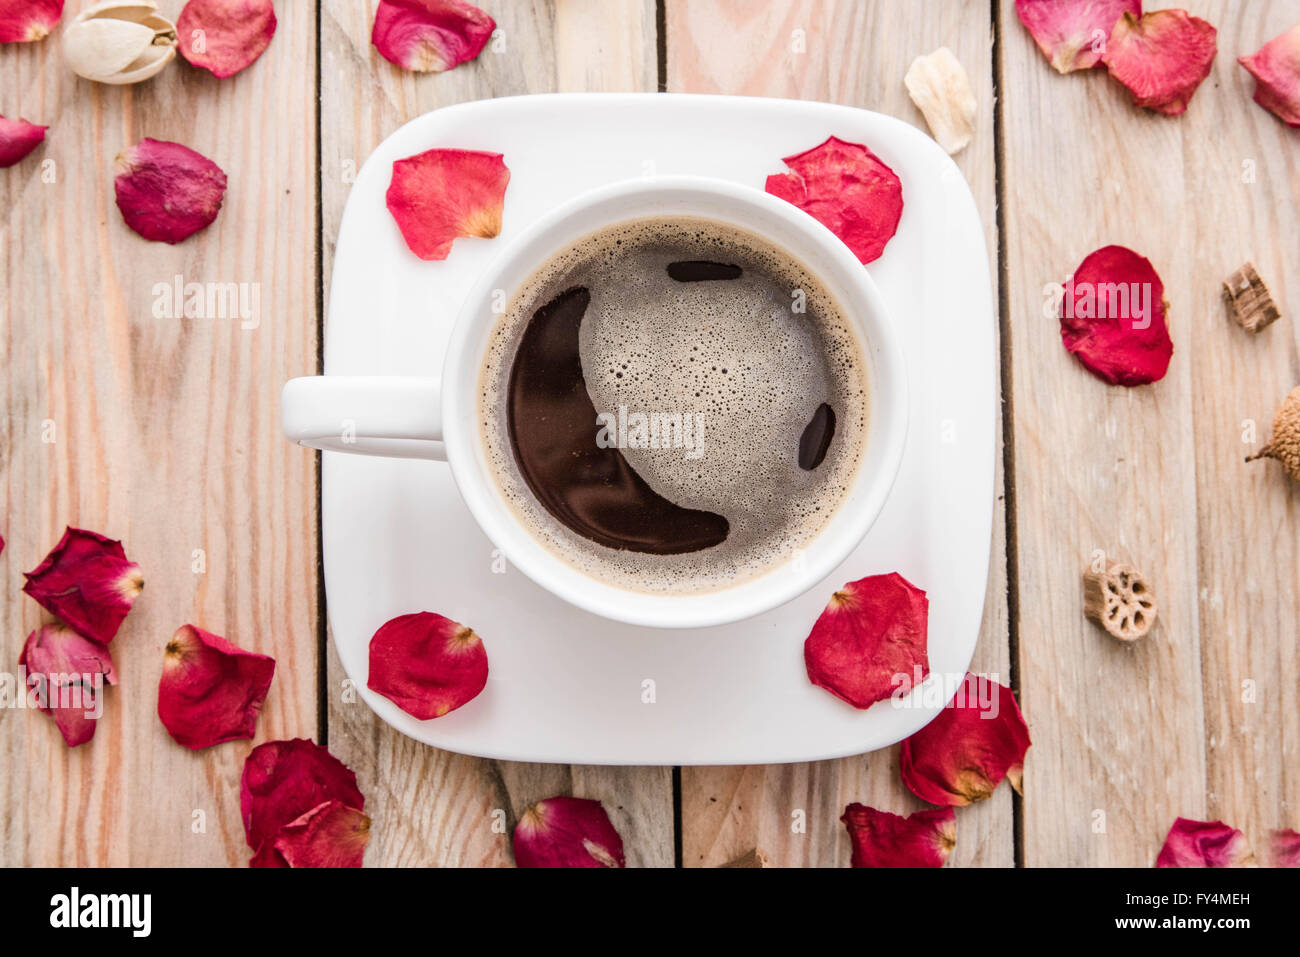 Cup of coffee is a reason for joy - Stock Image